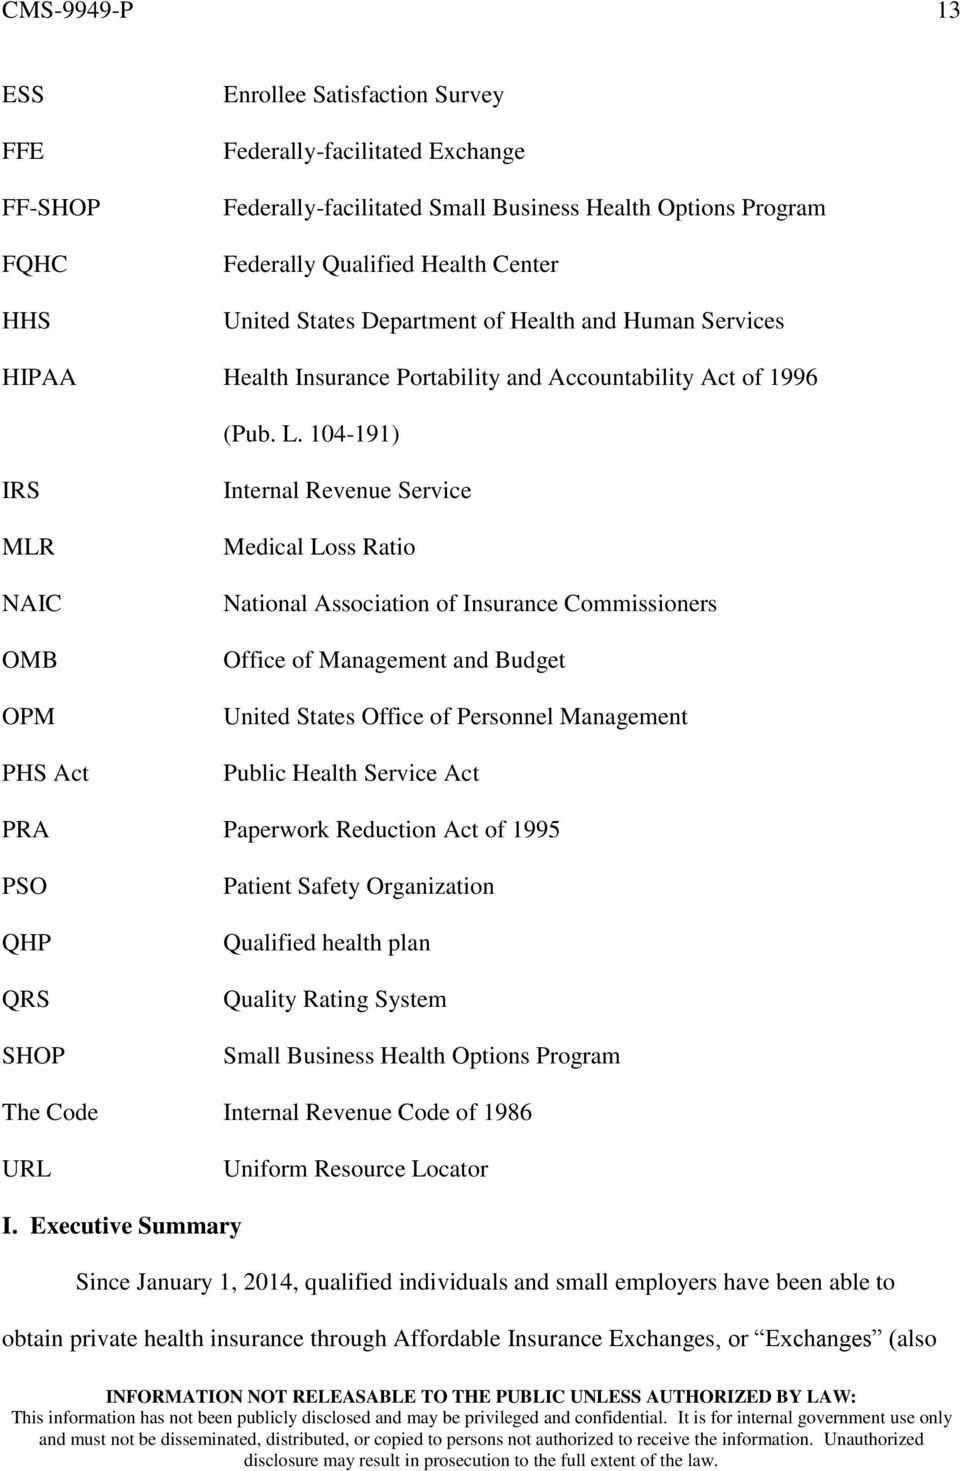 104-191) IRS MLR NAIC OMB OPM PHS Act Internal Revenue Service Medical Loss Ratio National Association of Insurance Commissioners Office of Management and Budget United States Office of Personnel